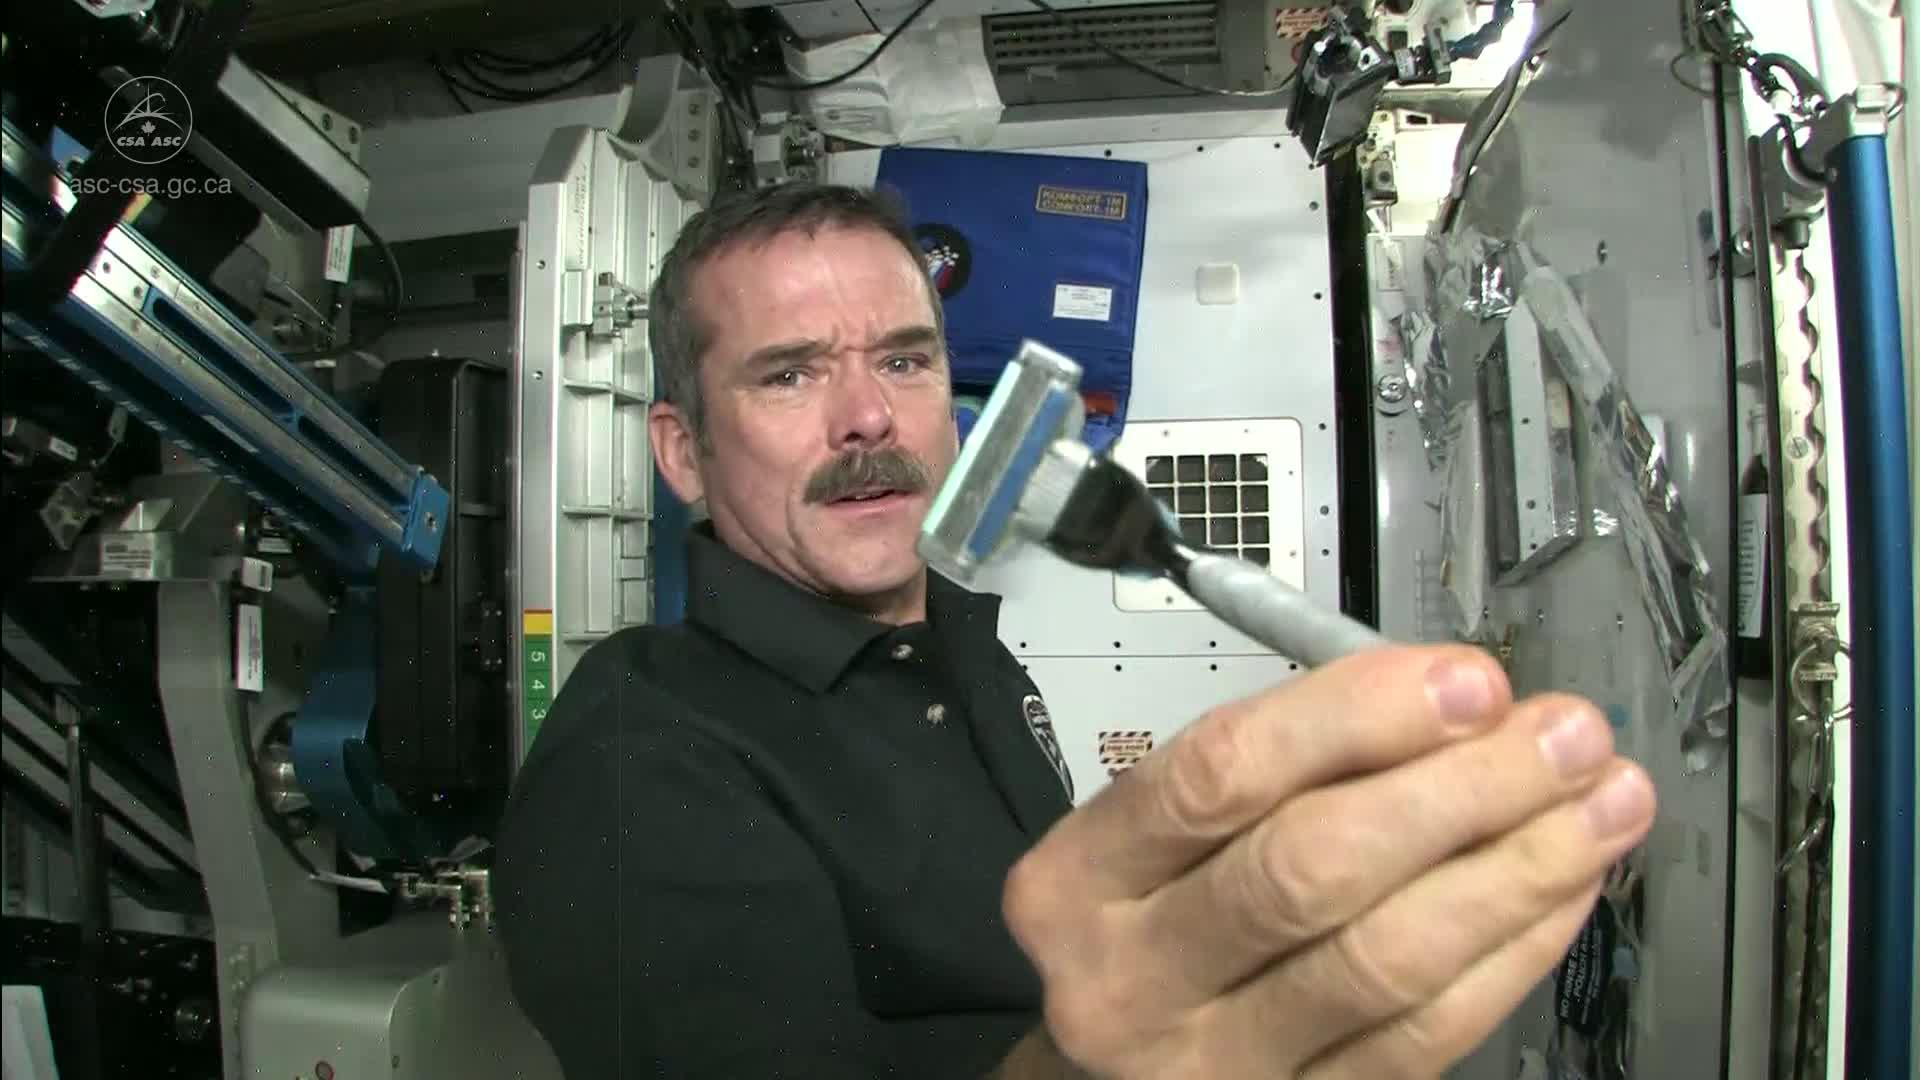 How astronauts use the bathroom - How Astronauts Use The Bathroom 36